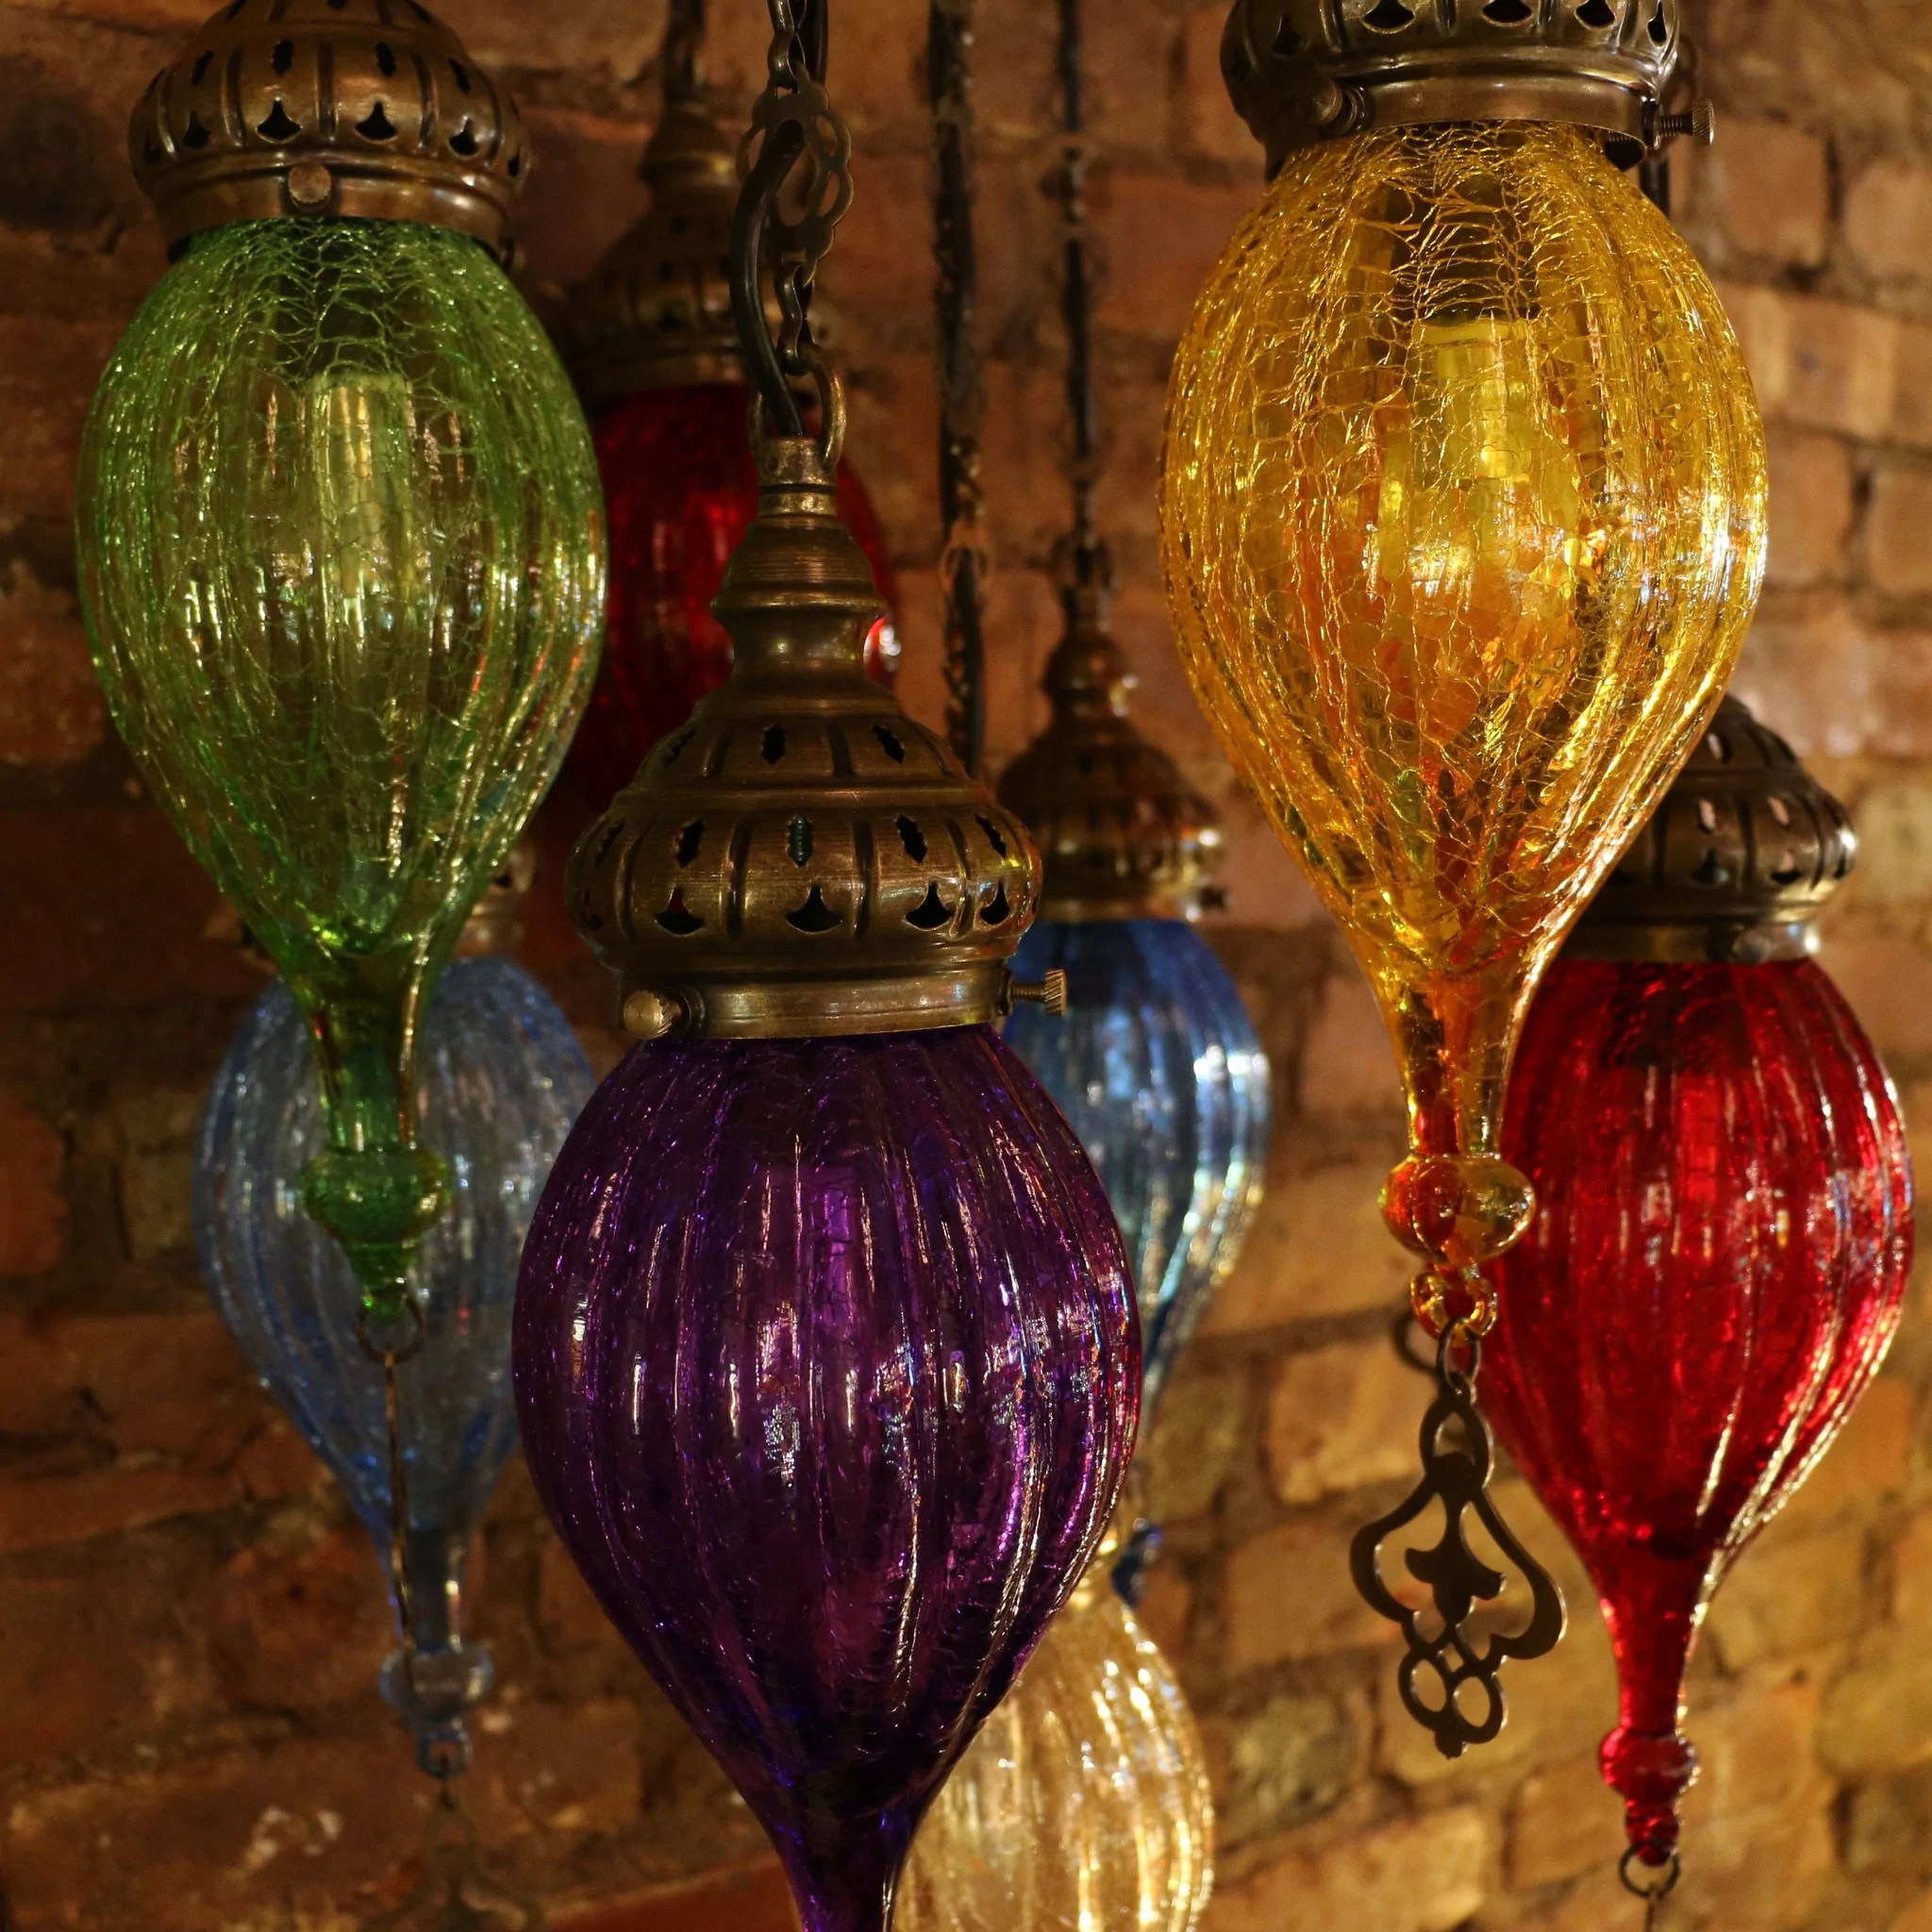 Our Mosaic Lamps are Handmade of Colored Glass and